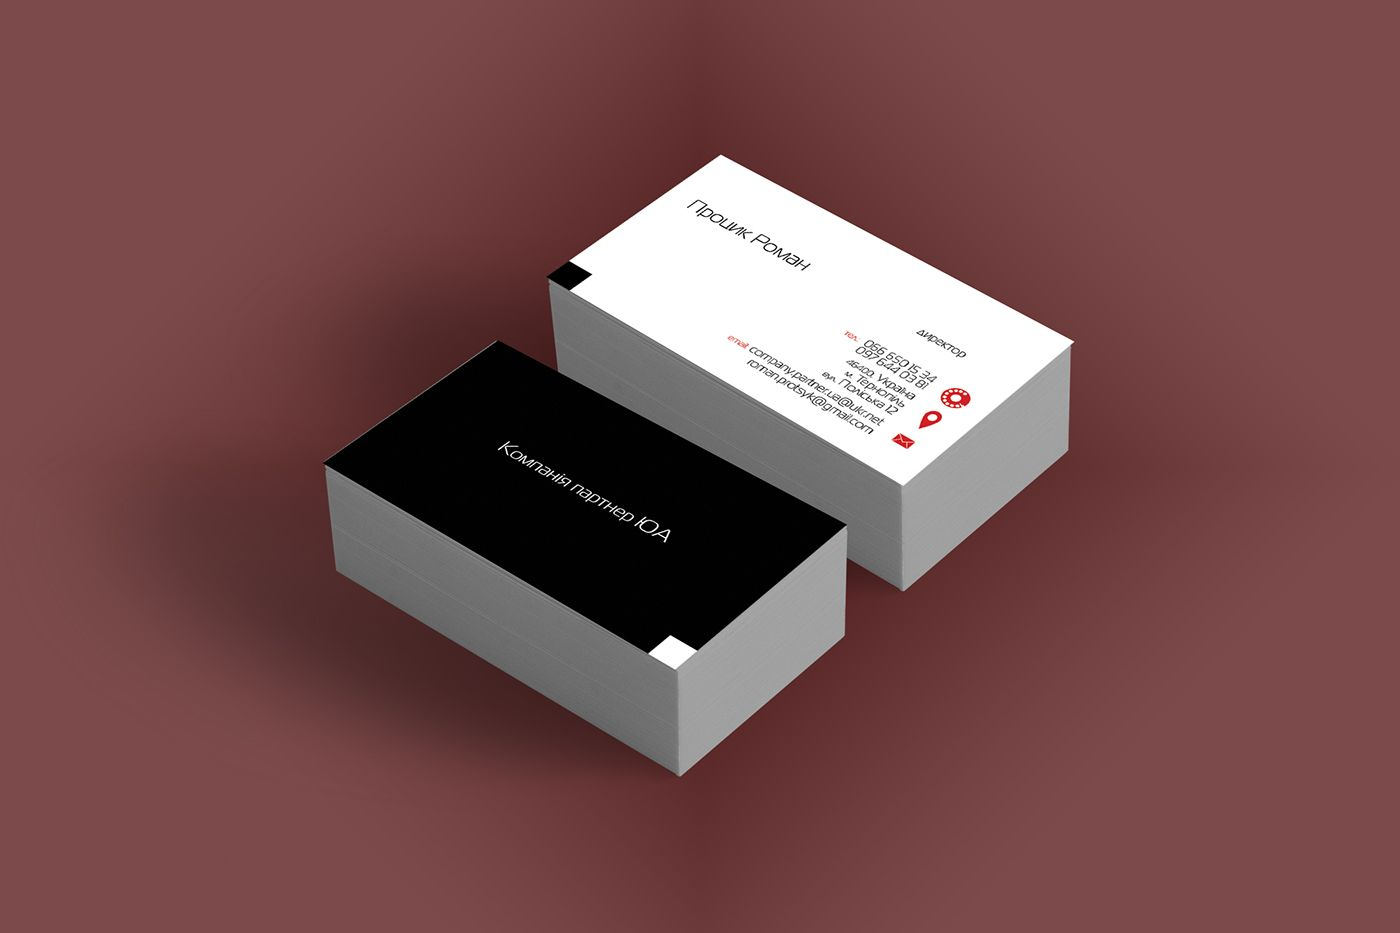 Behance :: Editing visit cards